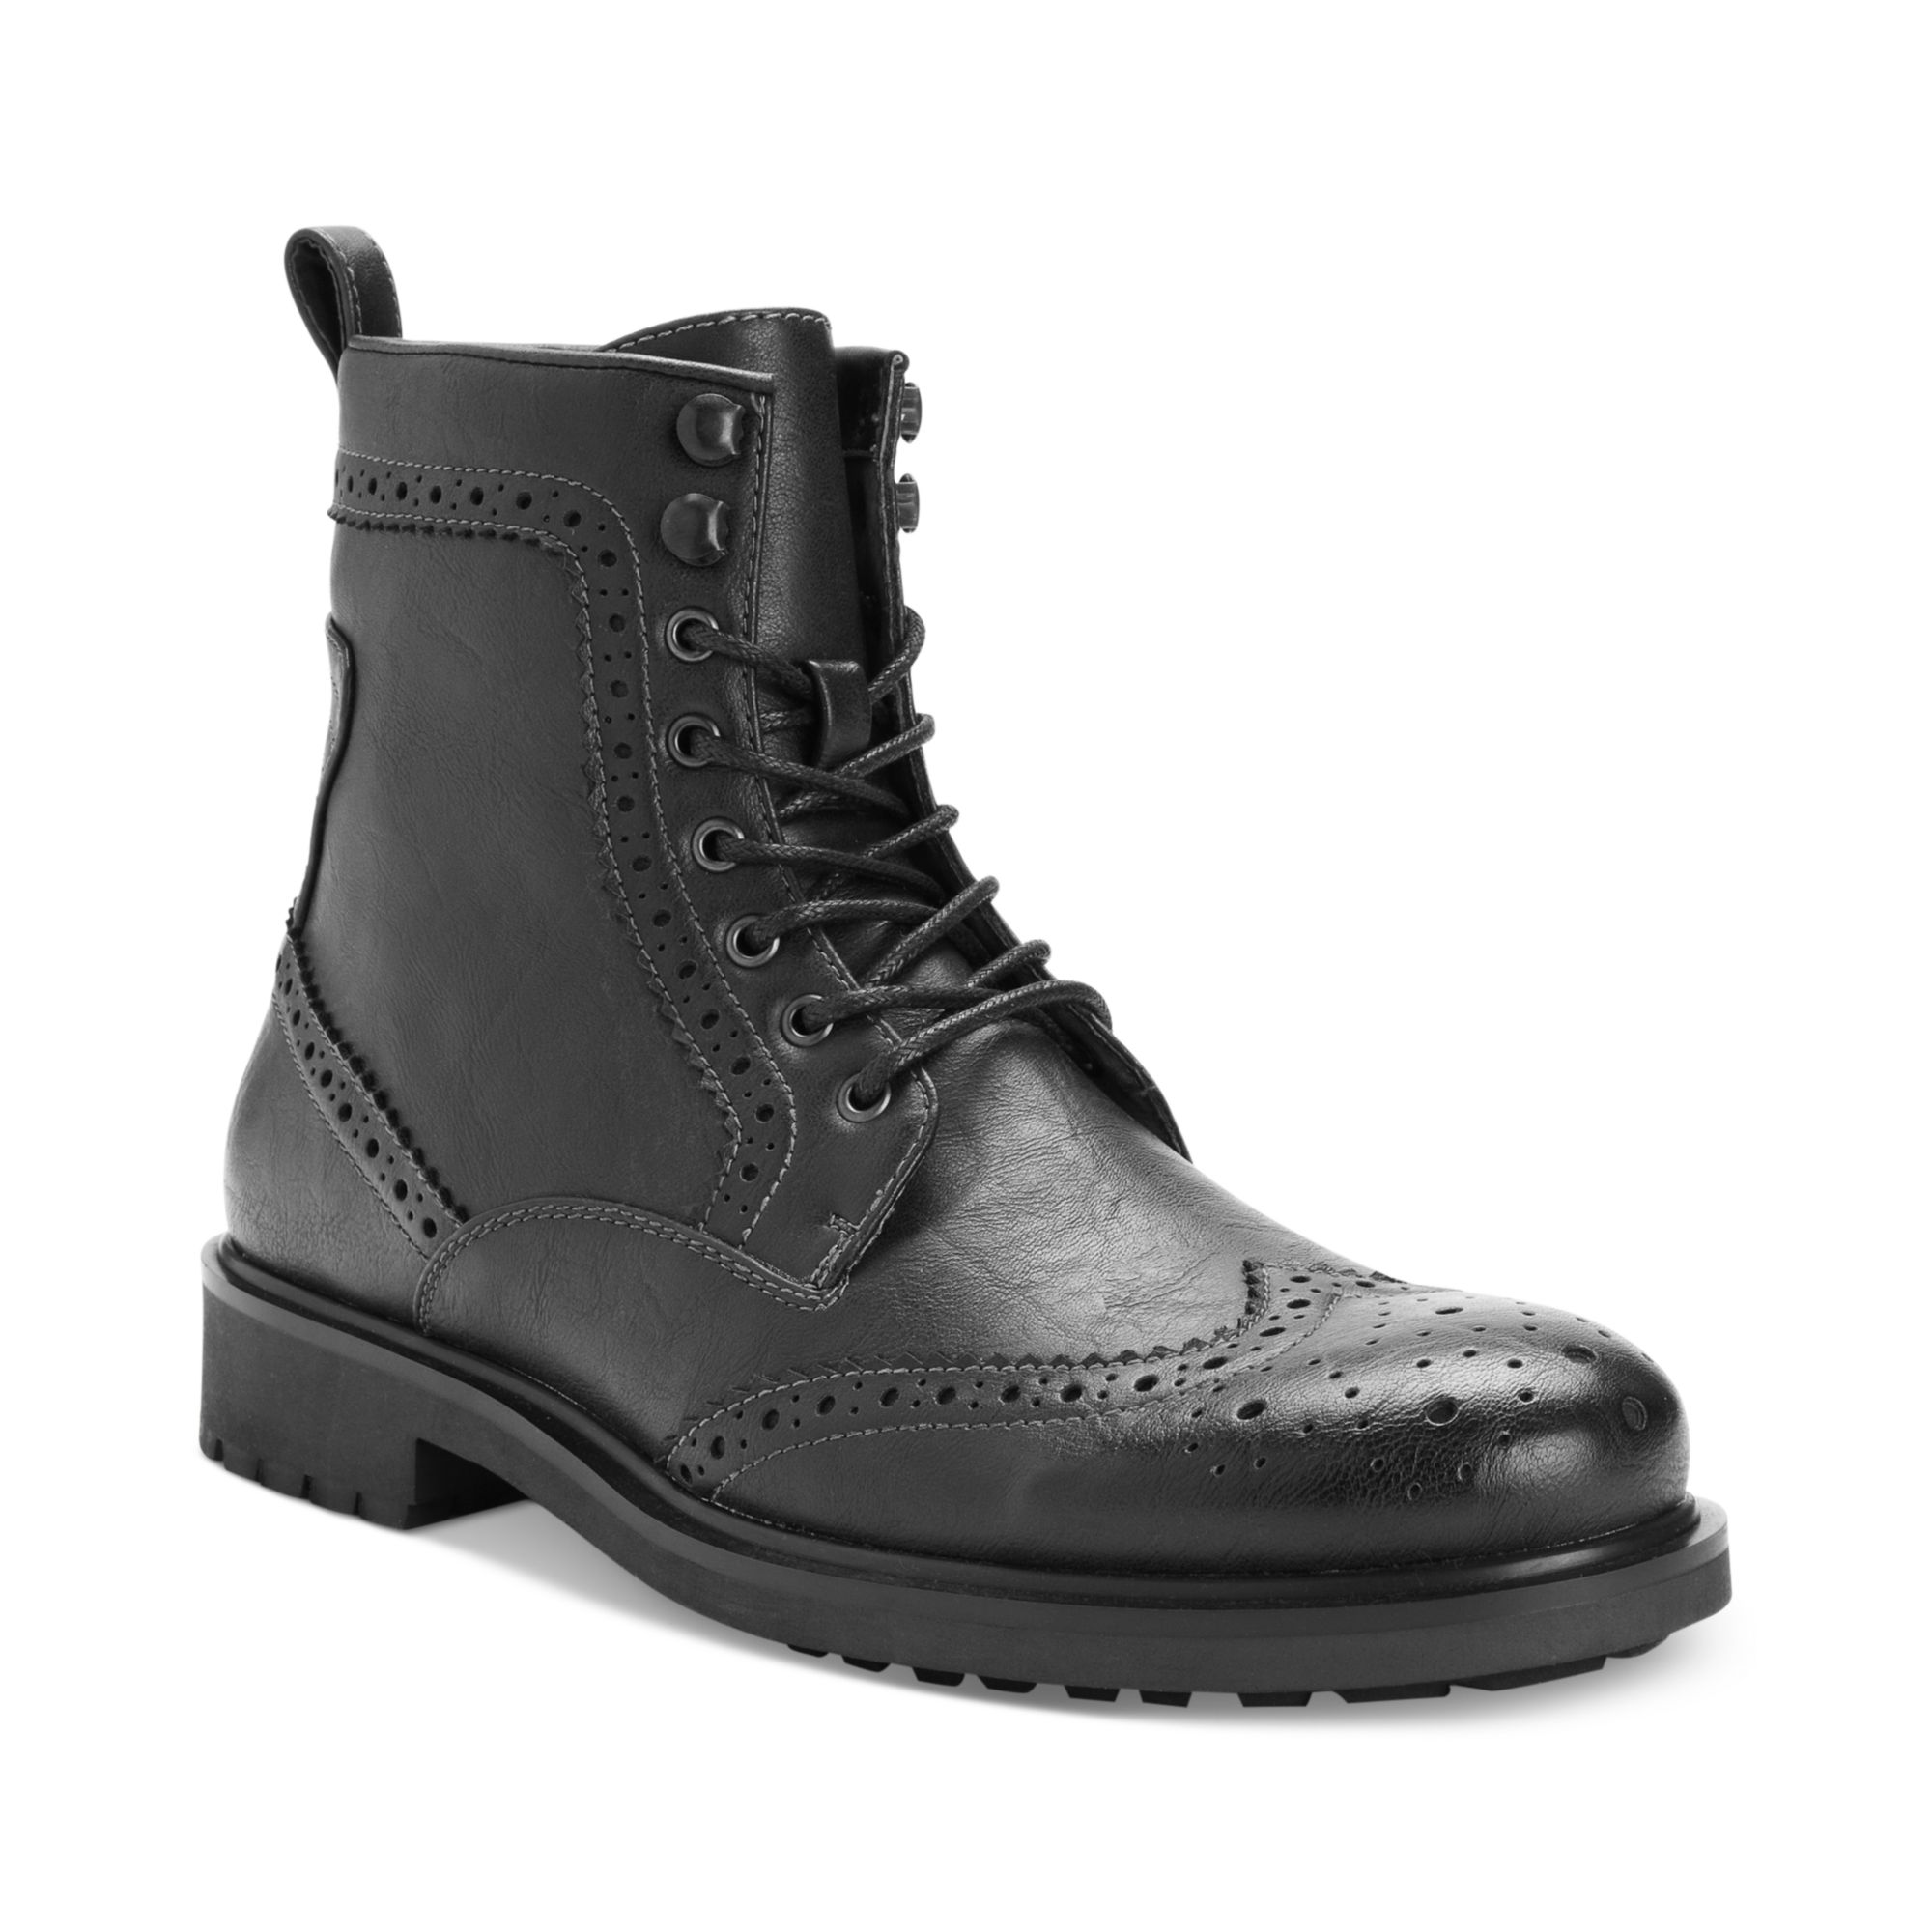 Steve Madden Madden Shoes Mofit Wingtip Boots In Black For